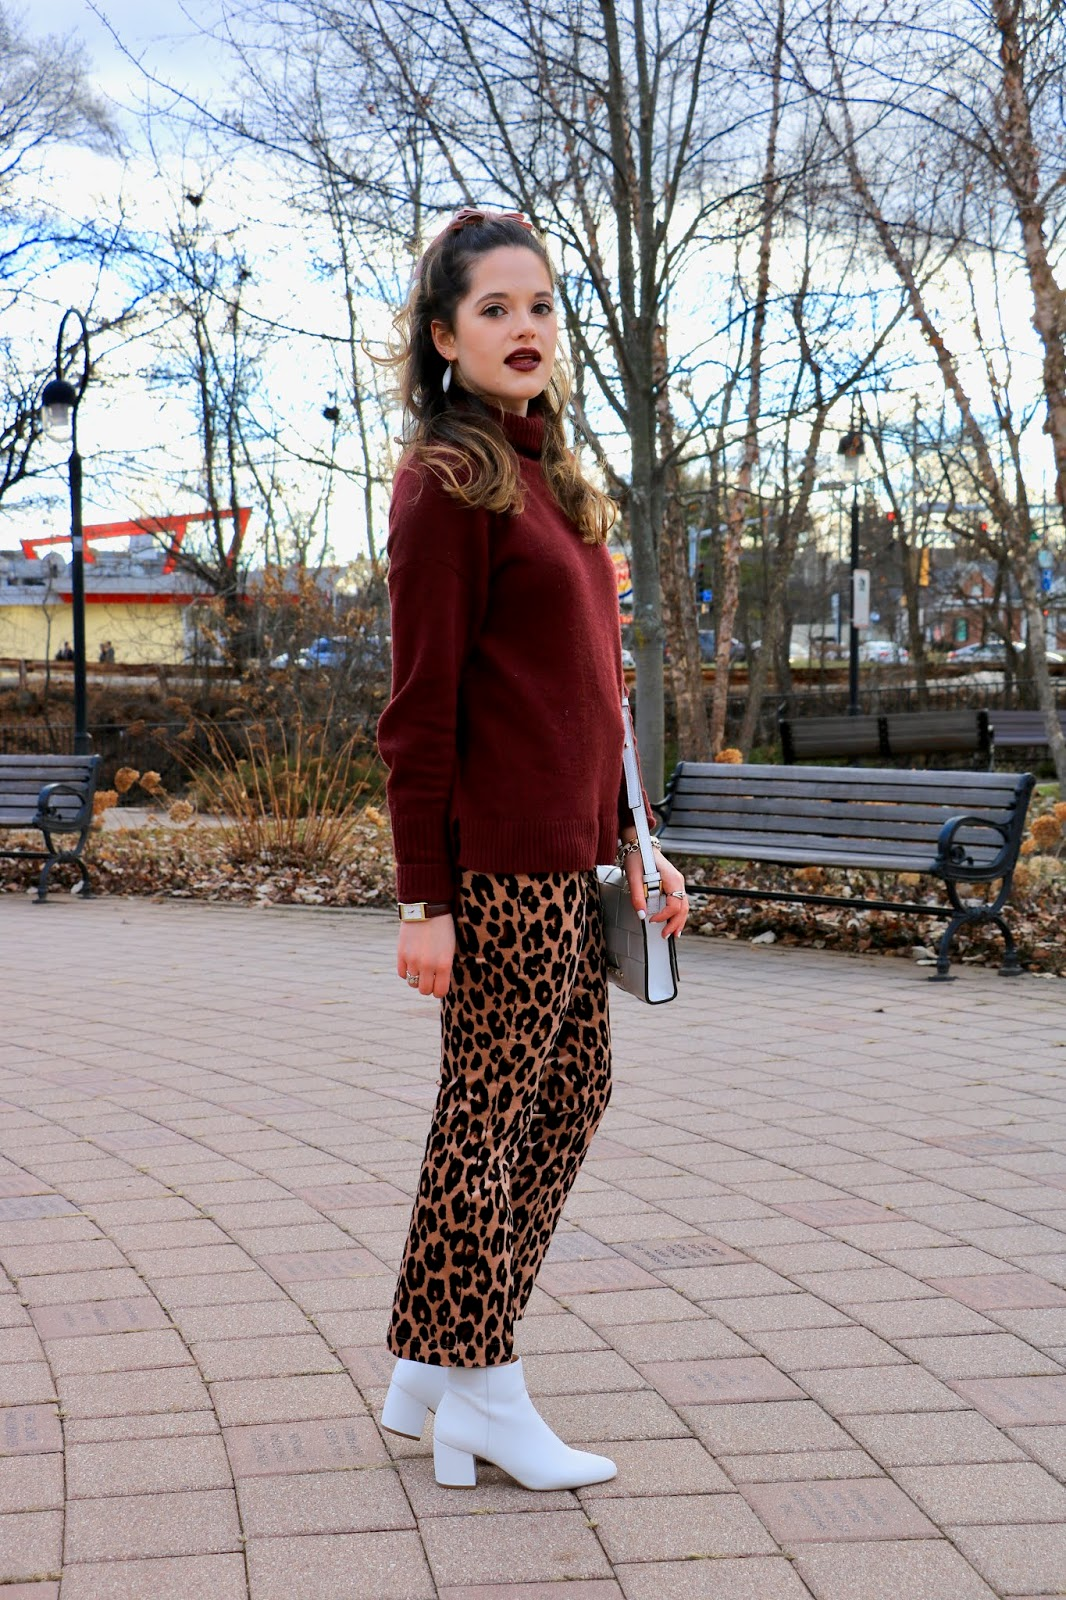 Nyc fashion blogger Kathleen Harper's cute winter outfit ideas